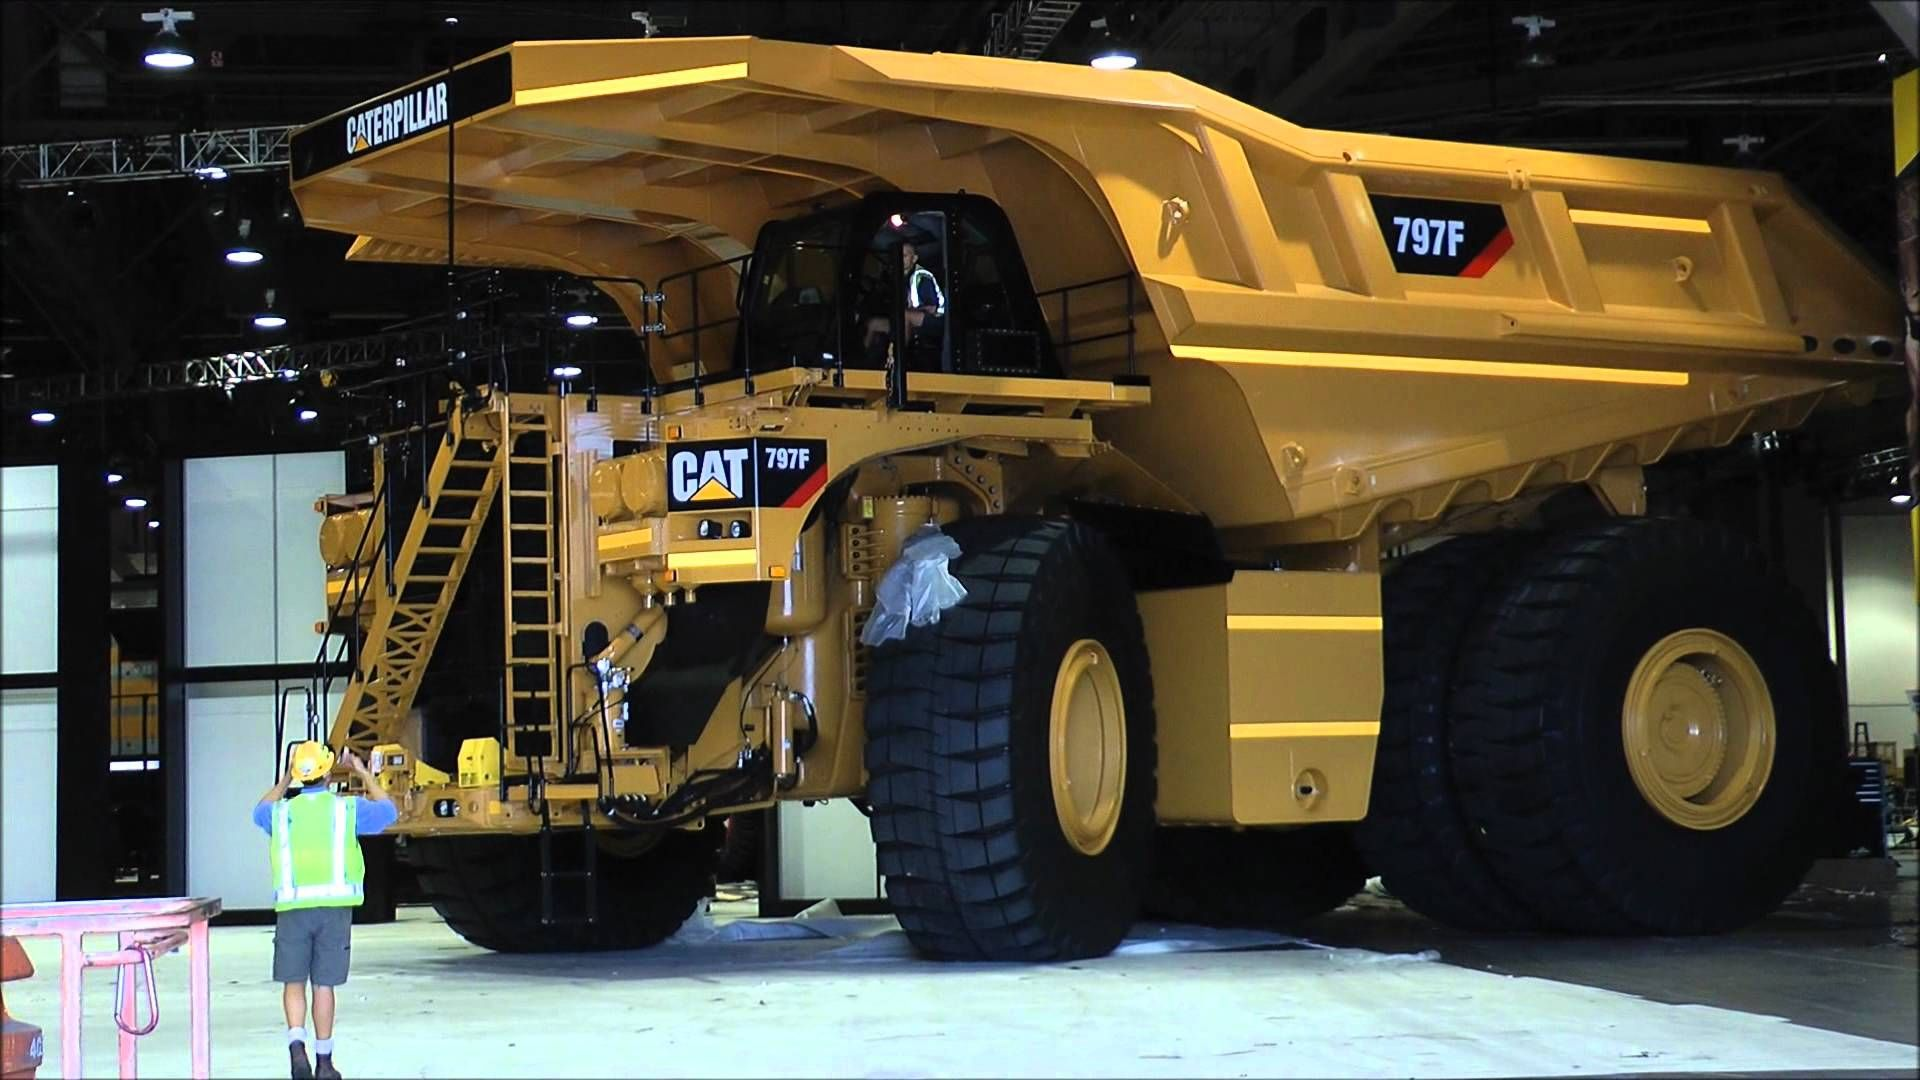 biggest dumptruck in the world caterpillar 797f caterpillar pictures pinterest models. Black Bedroom Furniture Sets. Home Design Ideas